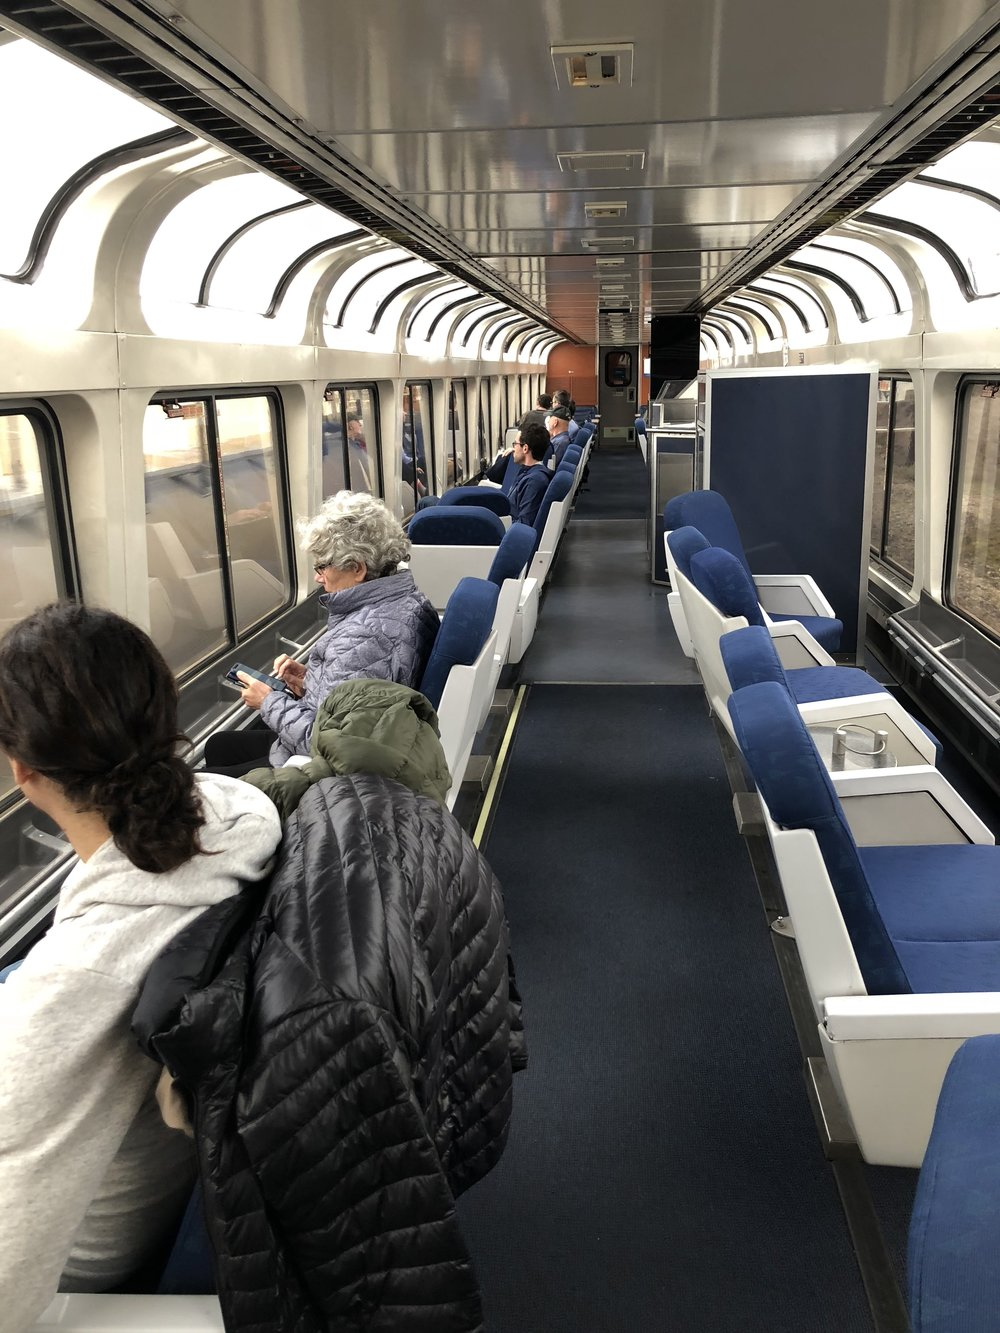 Amtrak has special cars for taking in the scenery